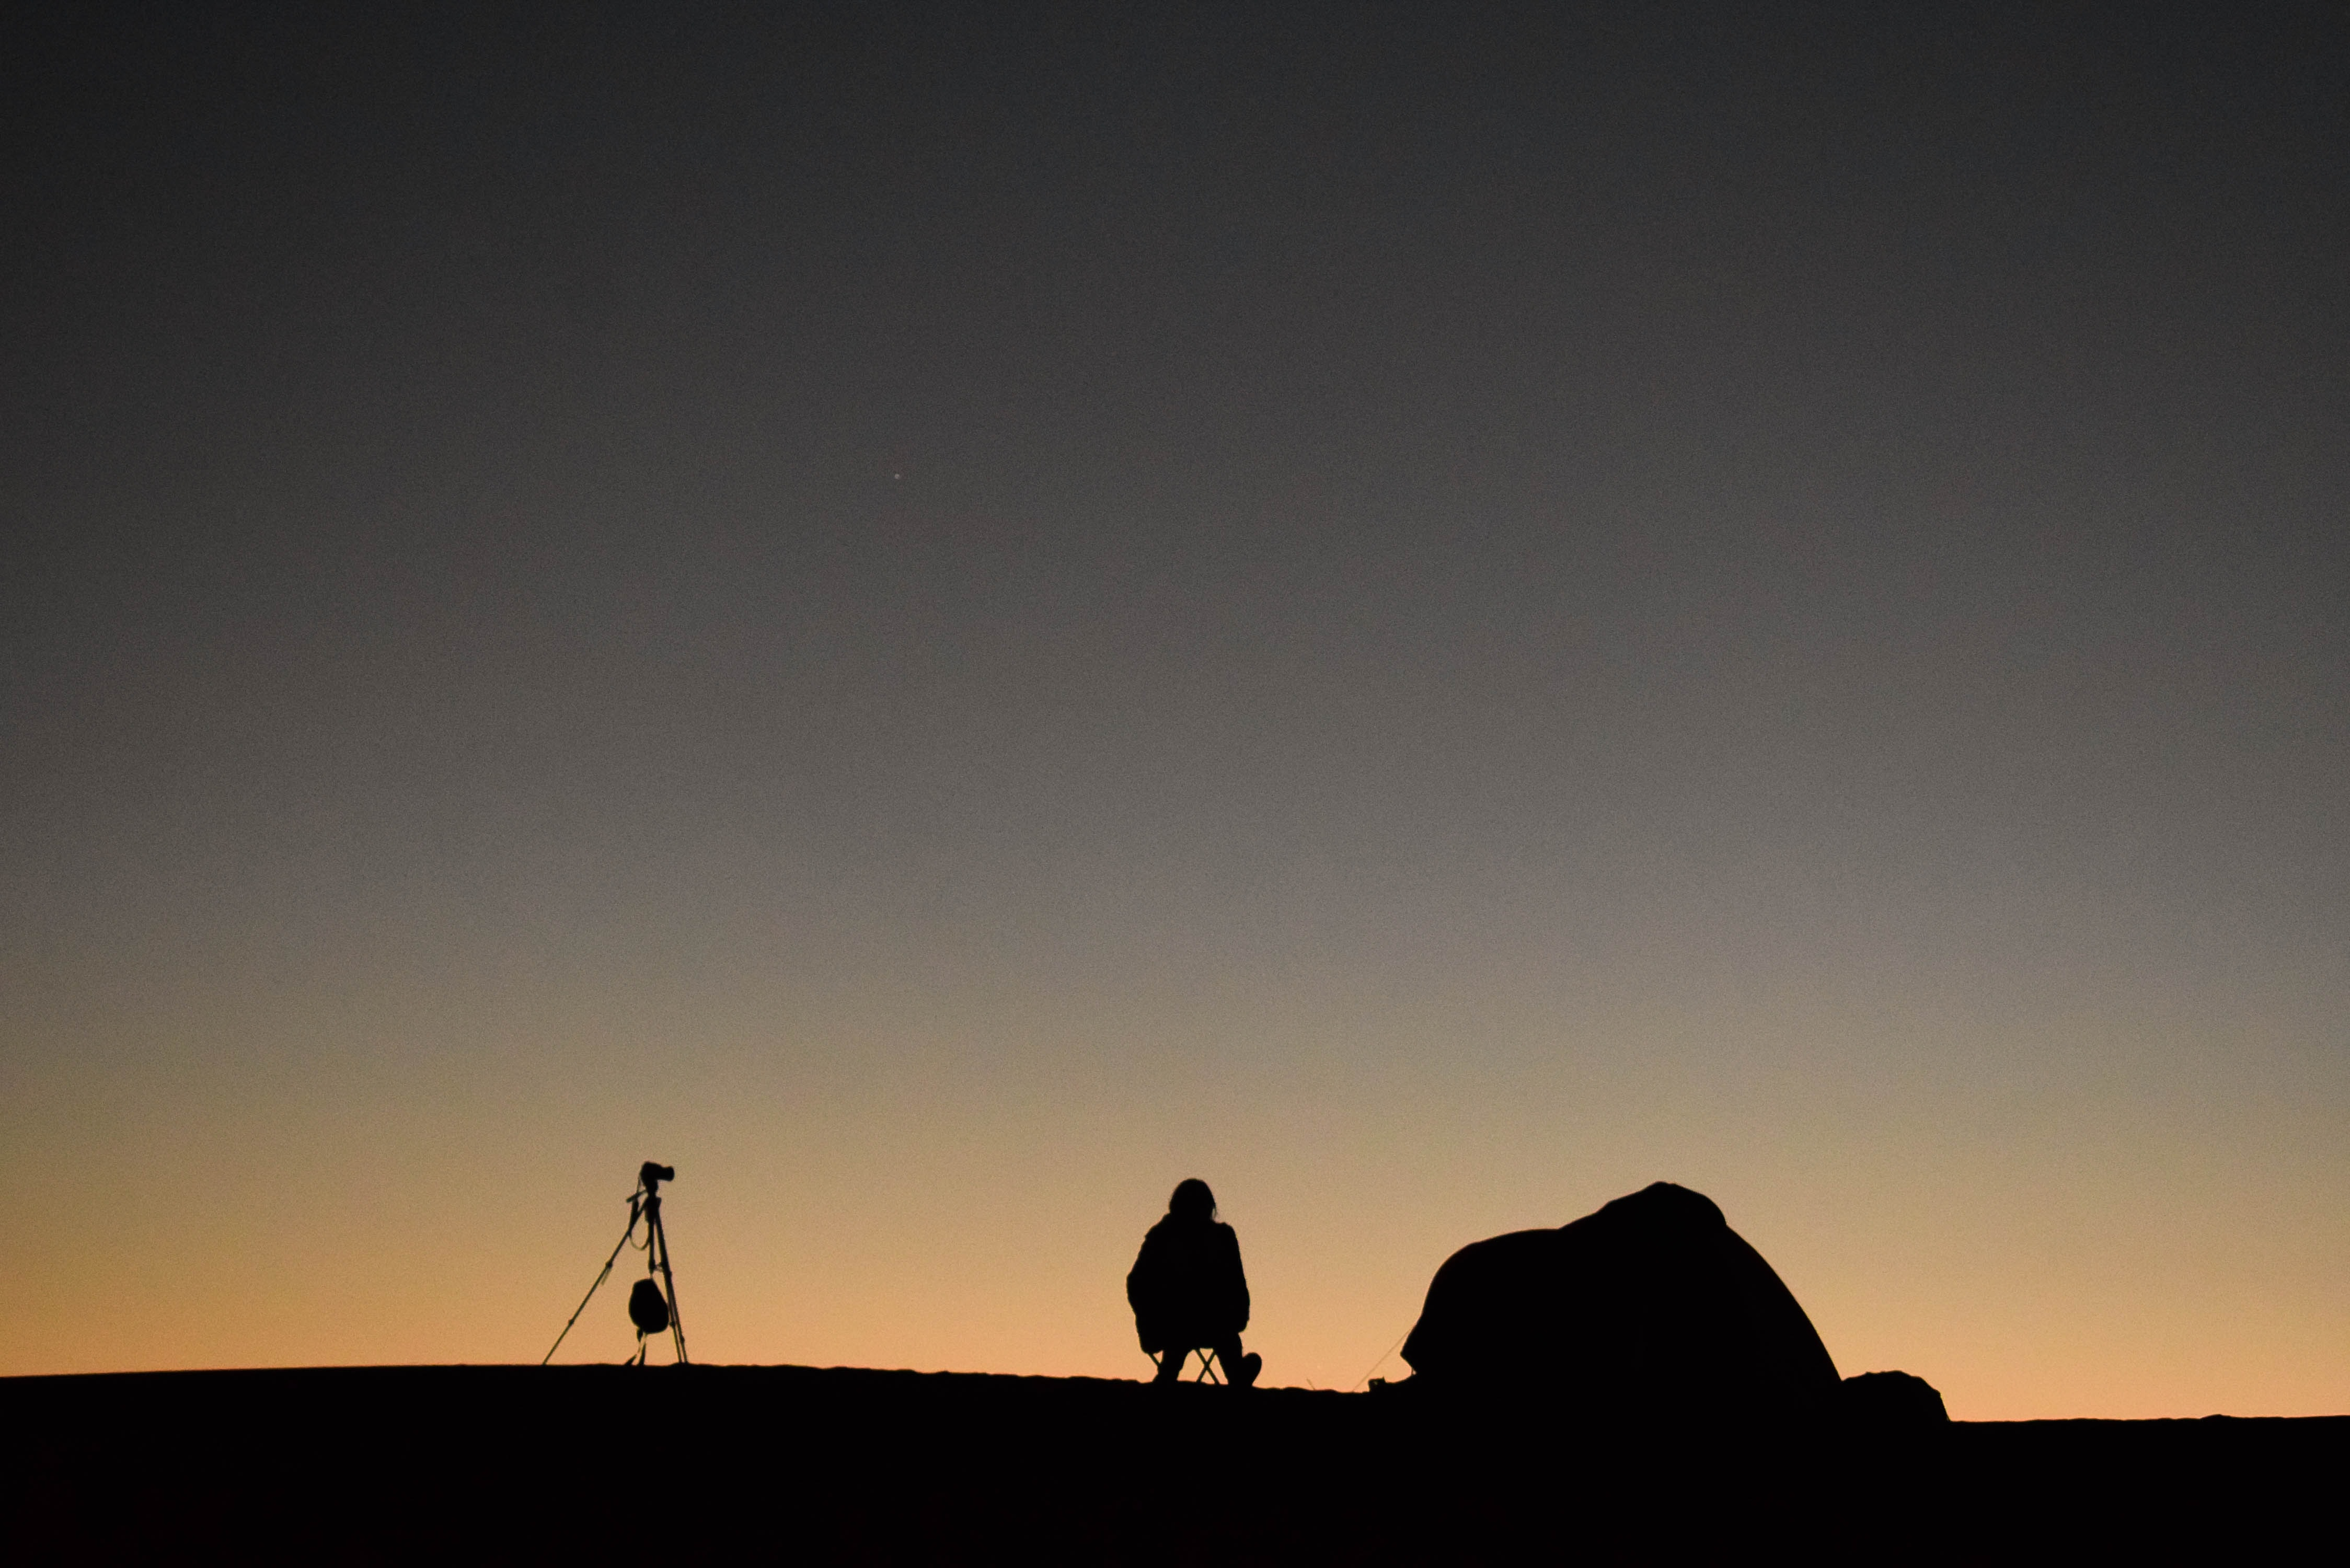 silhouette photo of person sitting on a camping chair